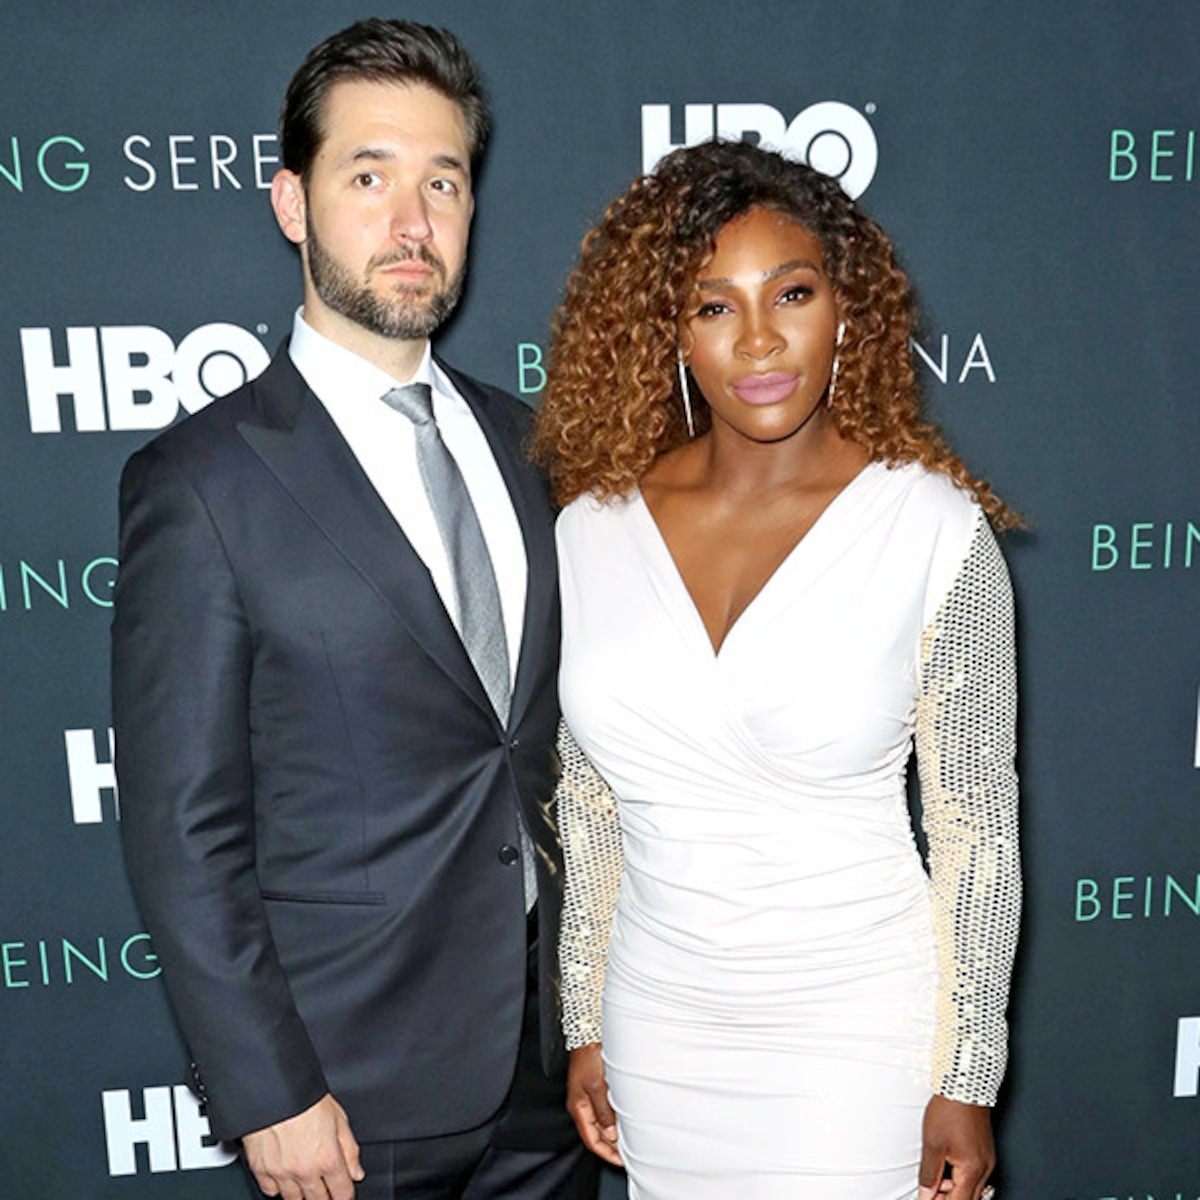 Serena Williams Husband Shares New Wedding Photo On Anniversary E Online